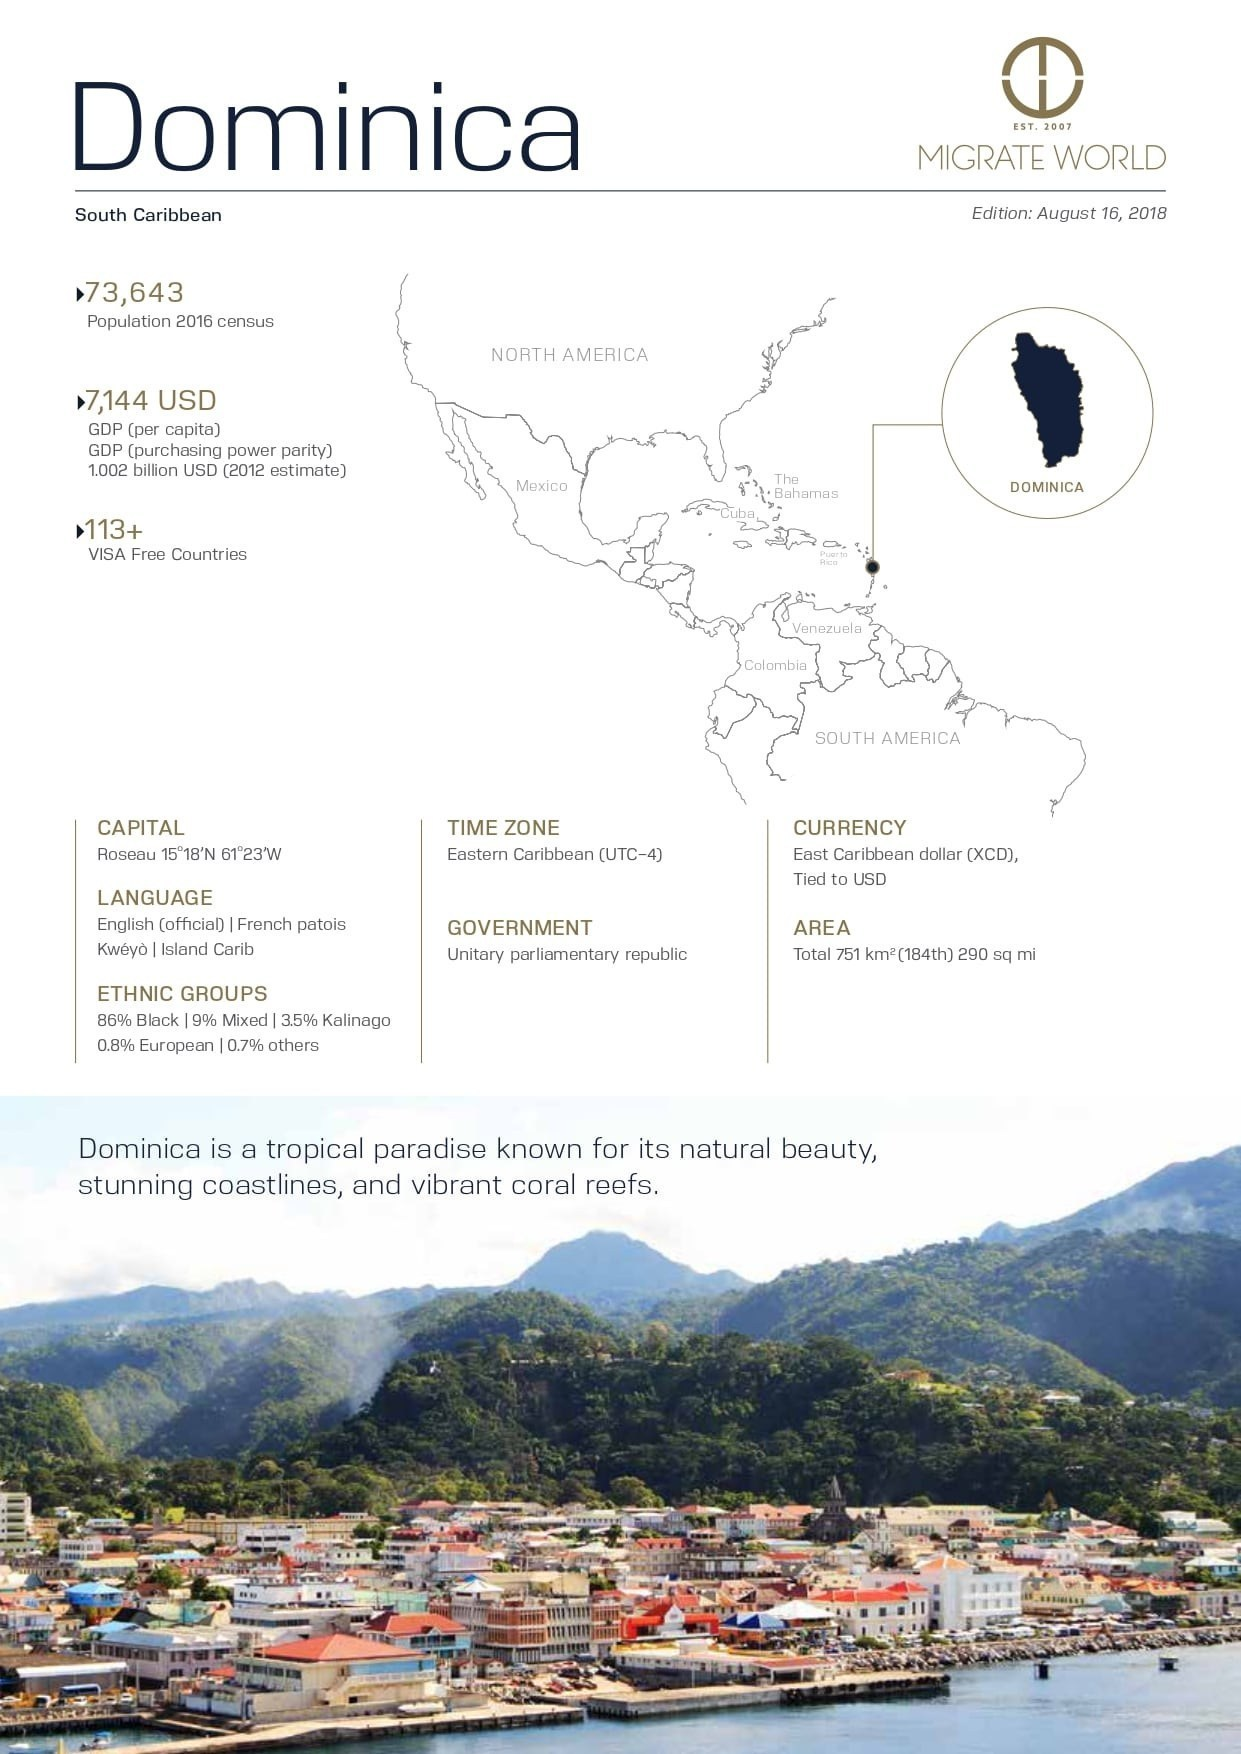 Dominica Program Brochure